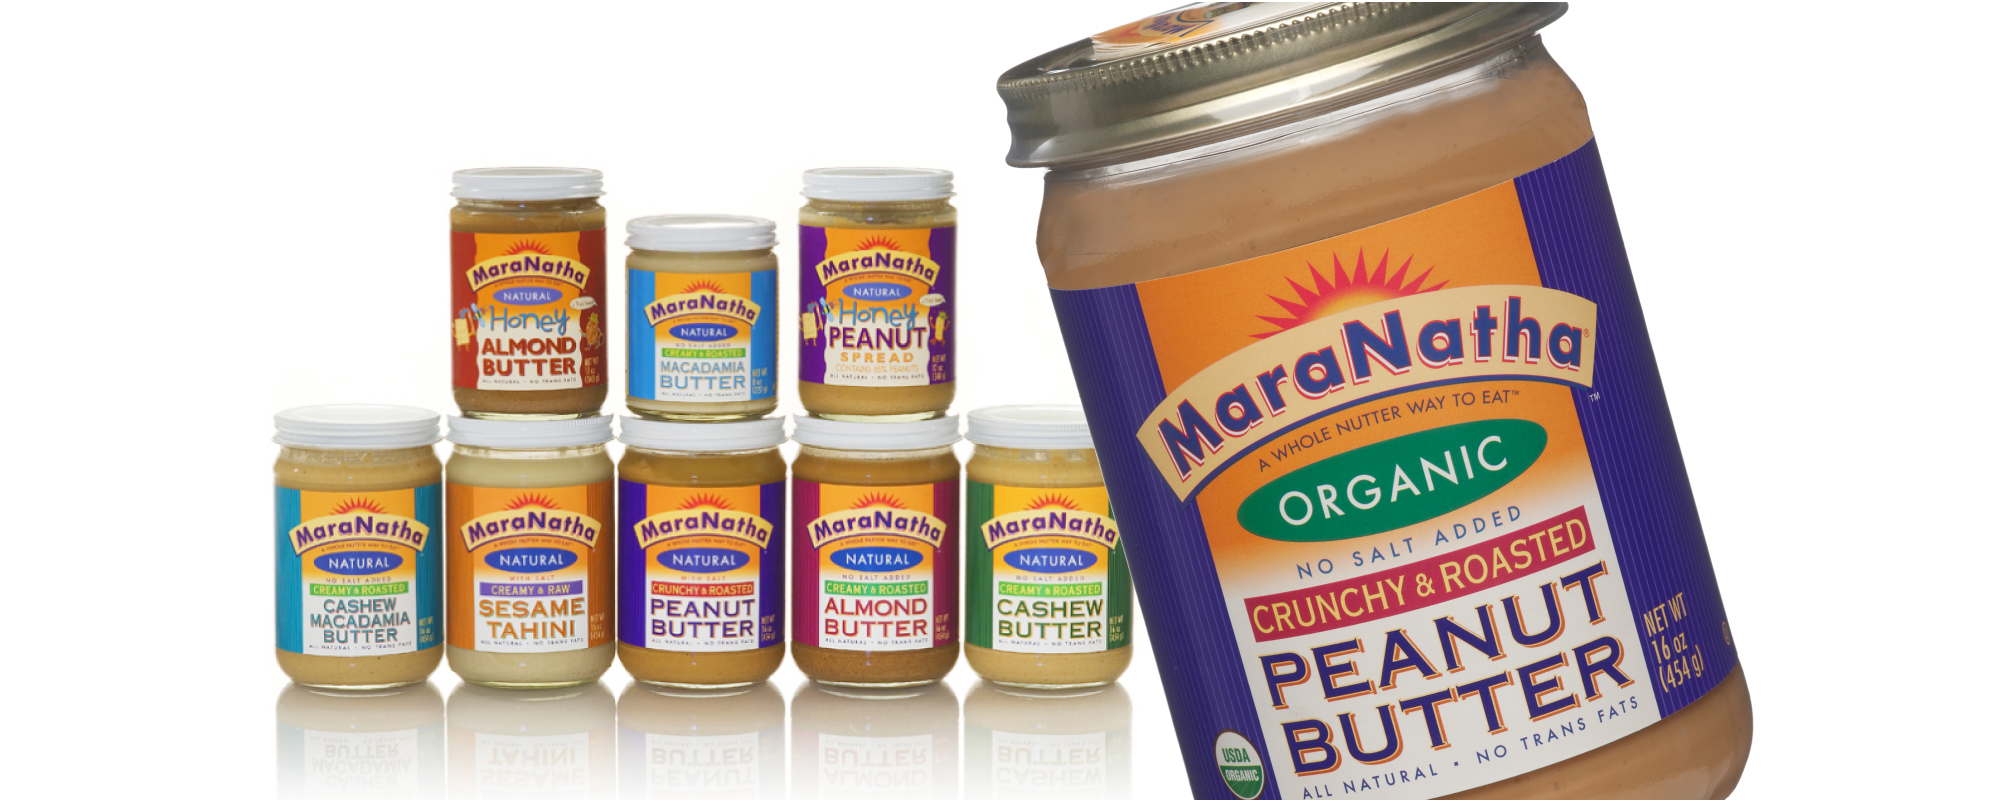 Truly Natural Food Corporation